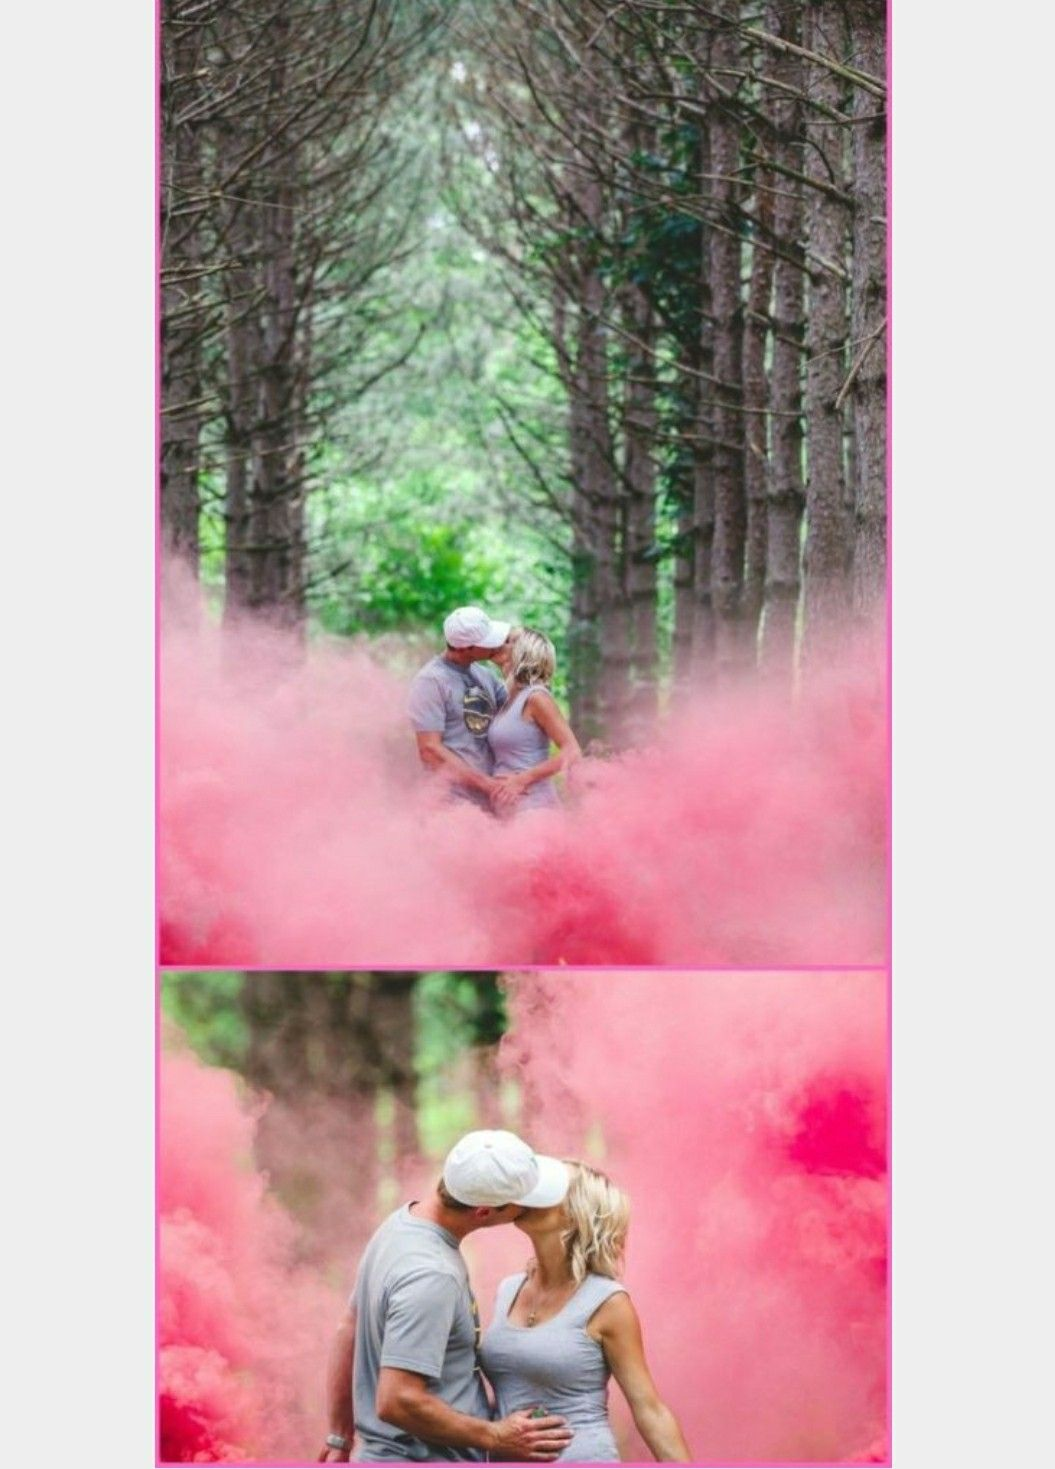 Pin By Melanie Schafer On Maternity Gender Reveal Photography Baby Gender Reveal Party Gender Reveal Pictures